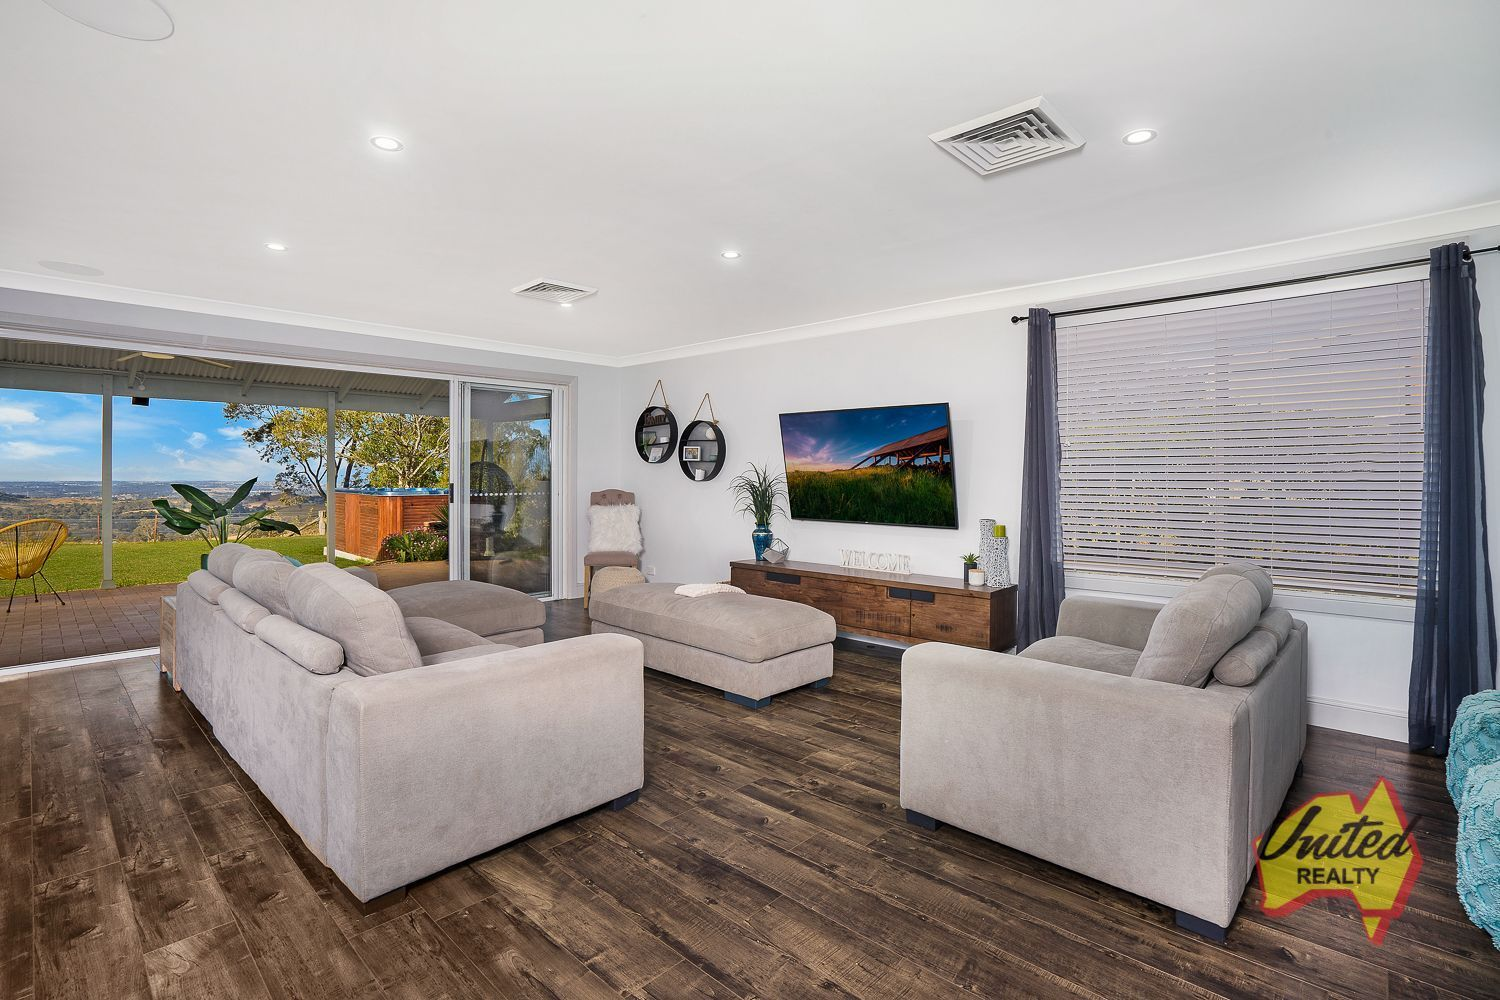 11a Browns Road The Oaks 2570